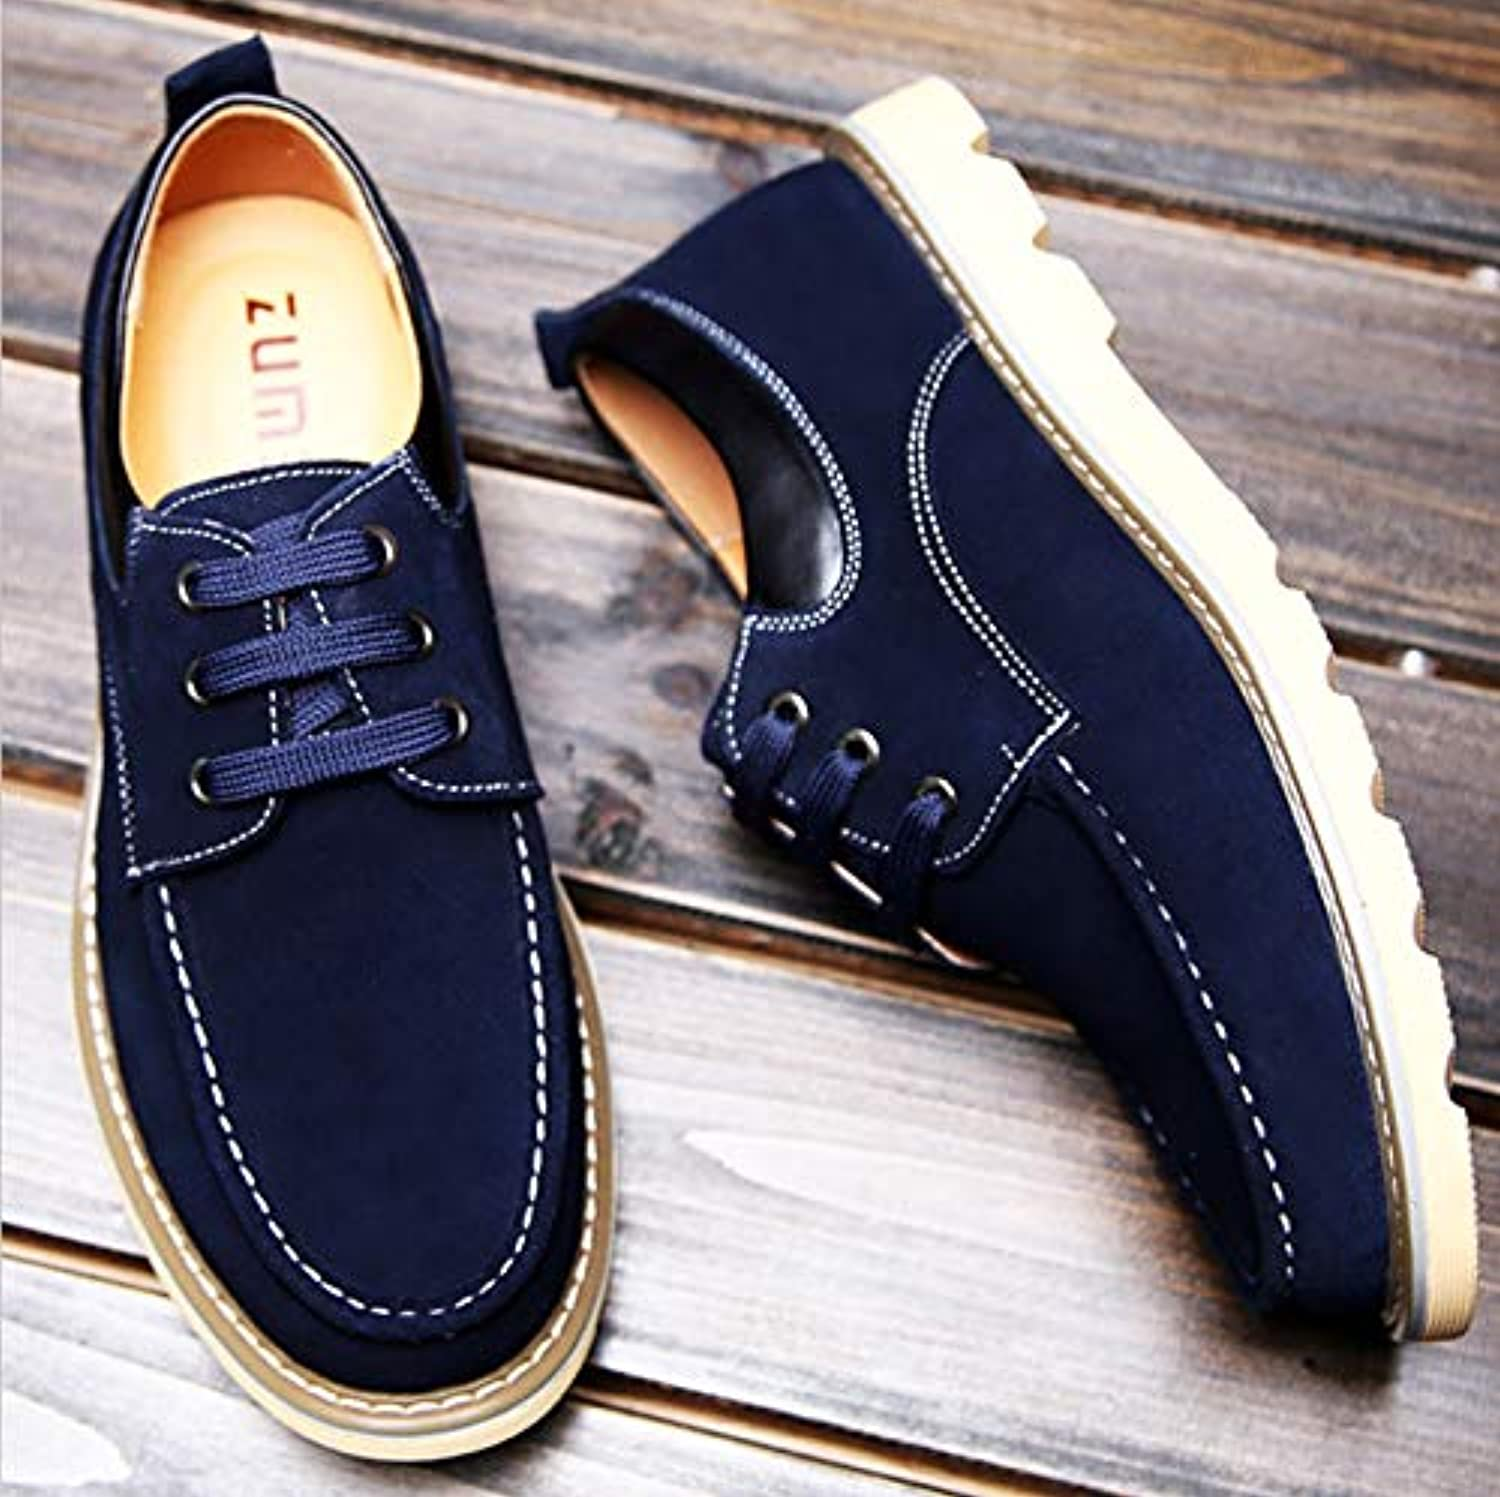 LOVDRAM Men'S Leather shoes Spring And Autumn Casual shoes Men'S Fashion shoes Comfortable Single shoes Casual shoes